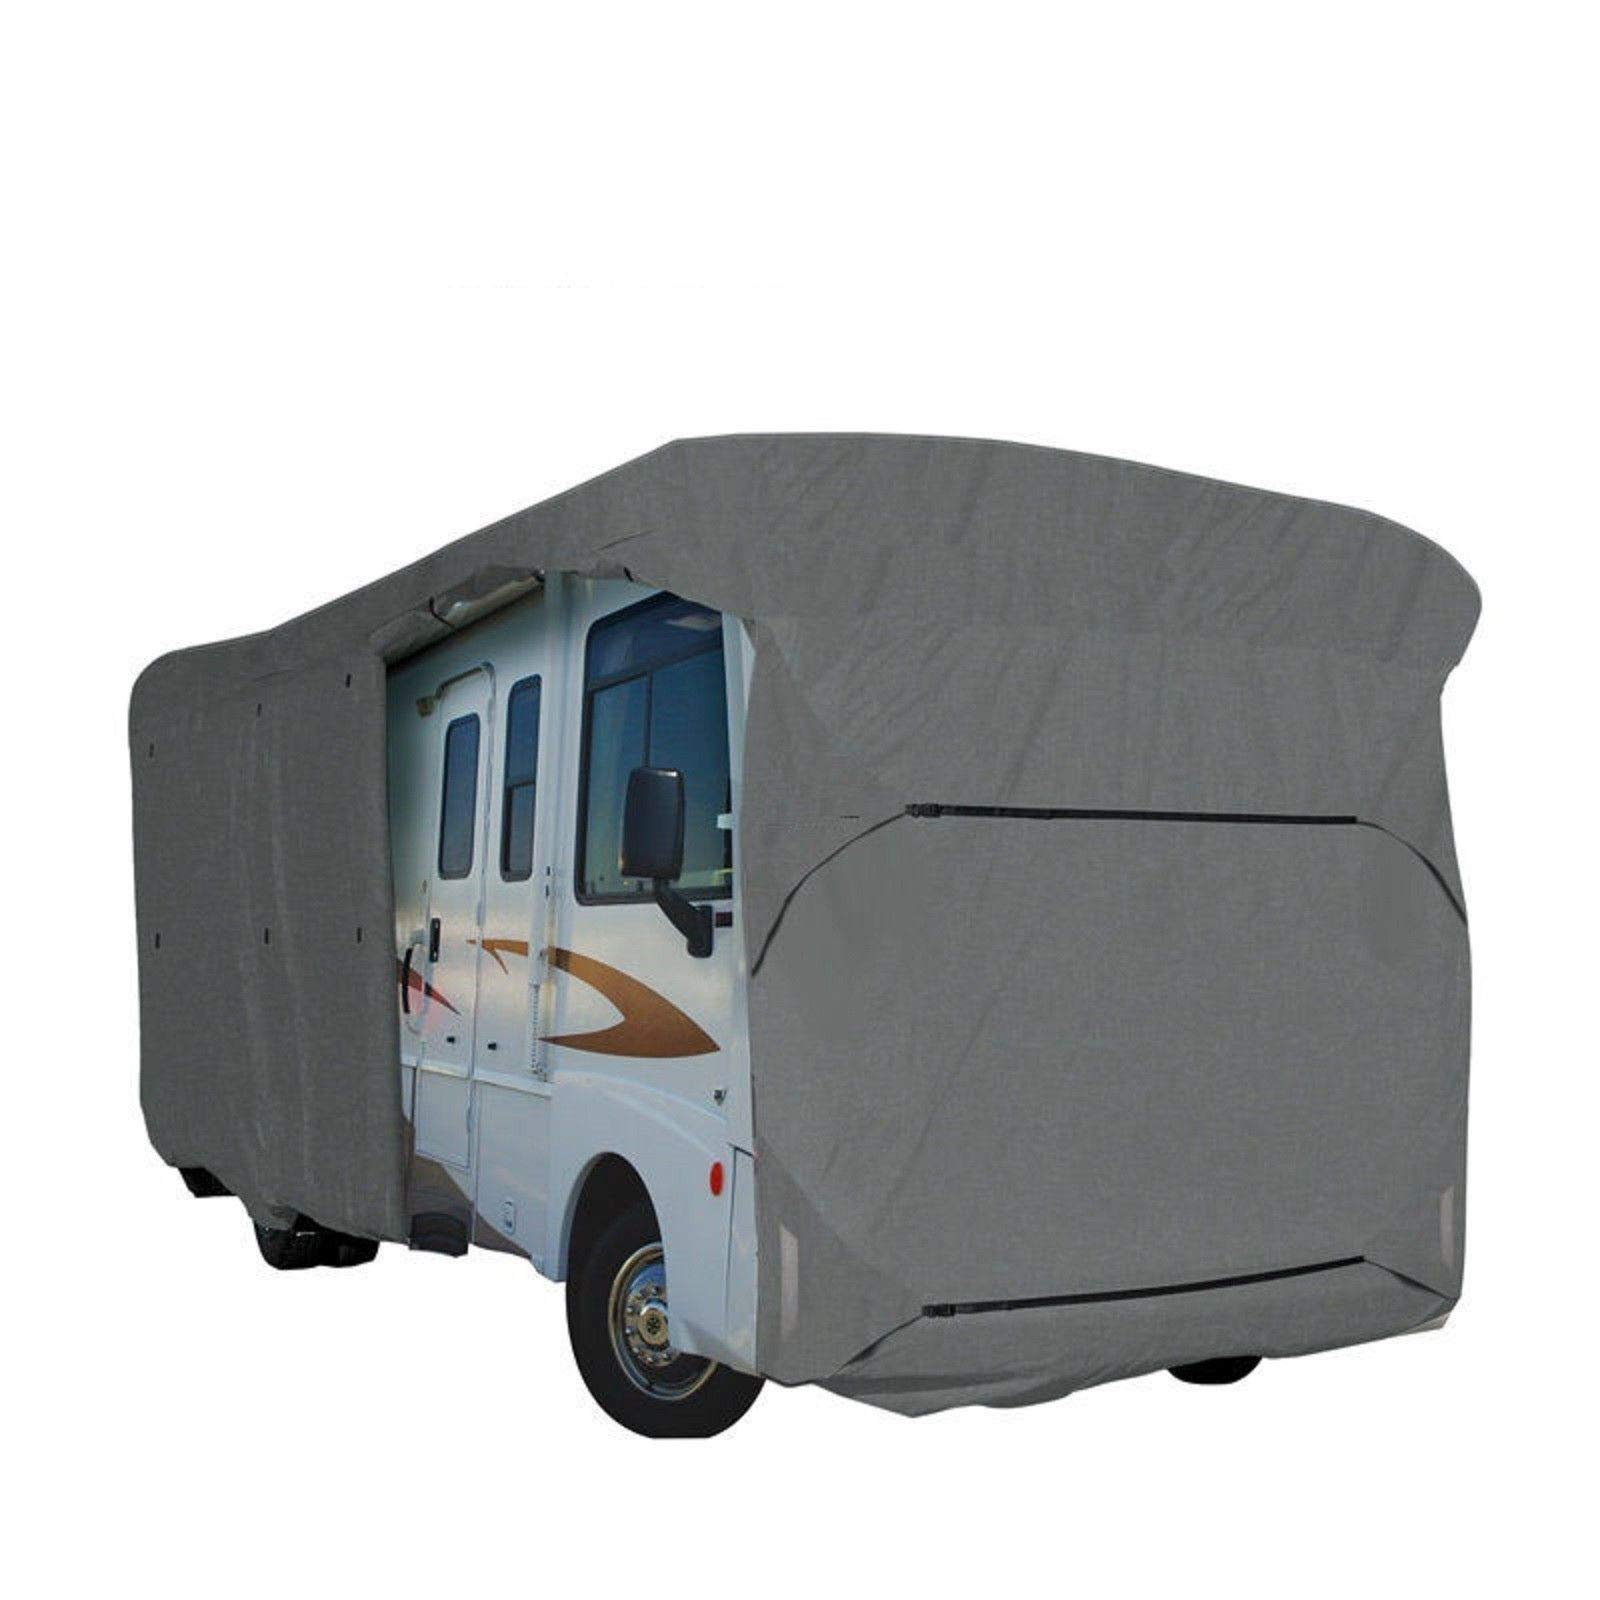 Waterproof RV Cover Motorhome Camper Travel Trailer 34' 35' 36' Class A B C by Marine Rv Direct